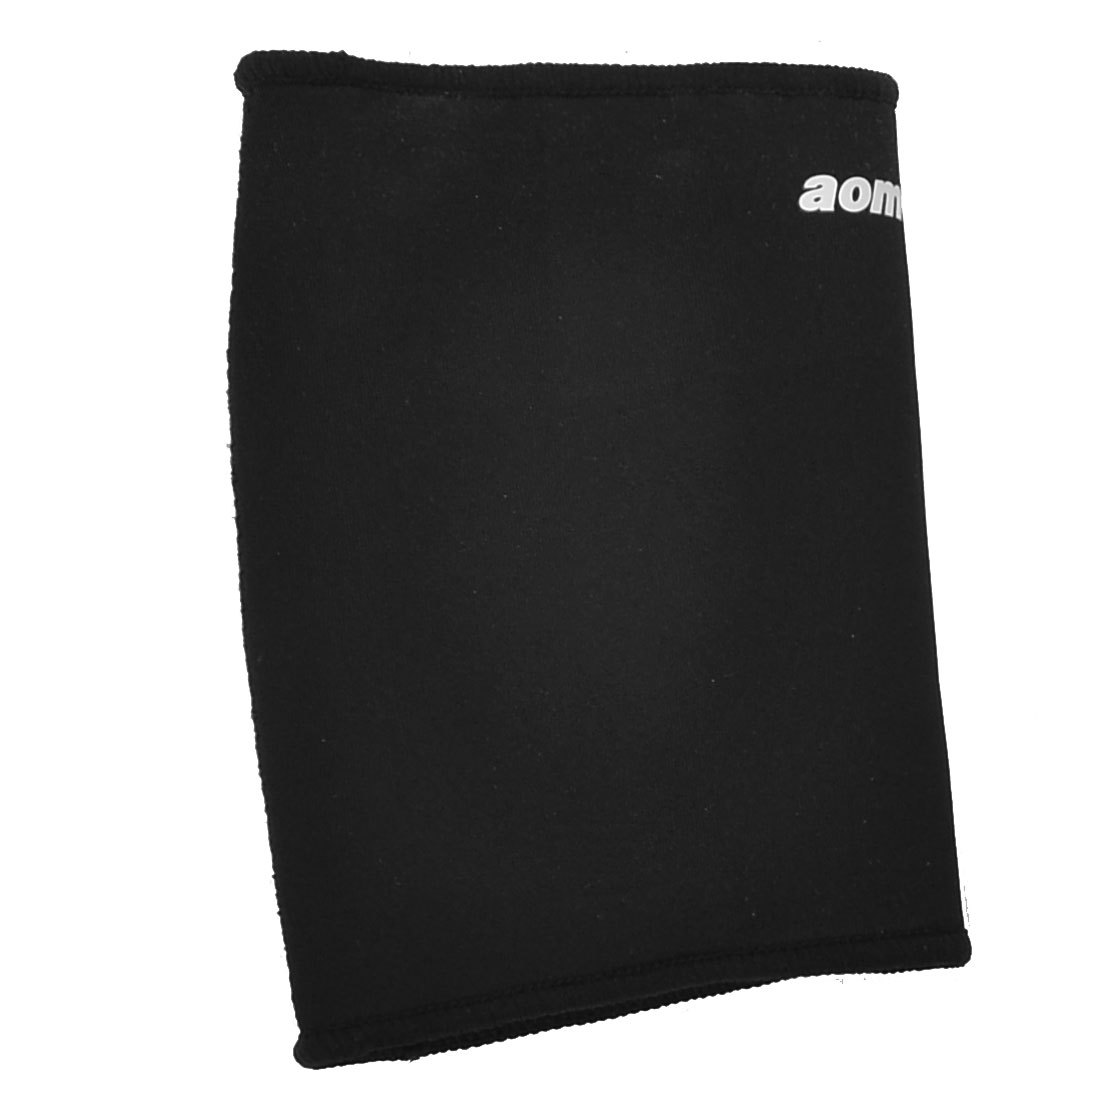 Pair Outdoor Sports Black Stretch Elbow Support Protector